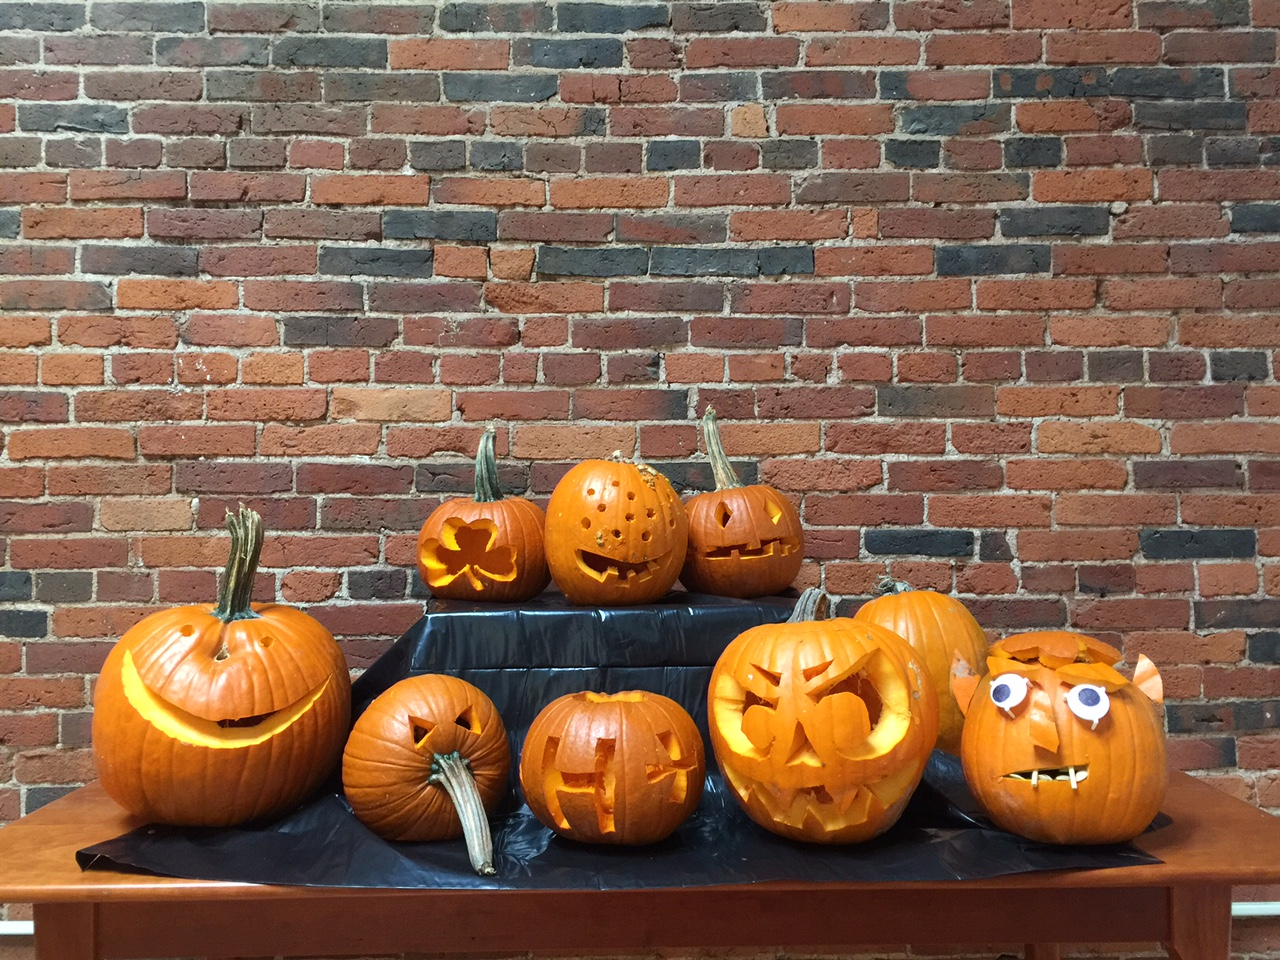 Harriman's Annual Pumpkin Carving Contest